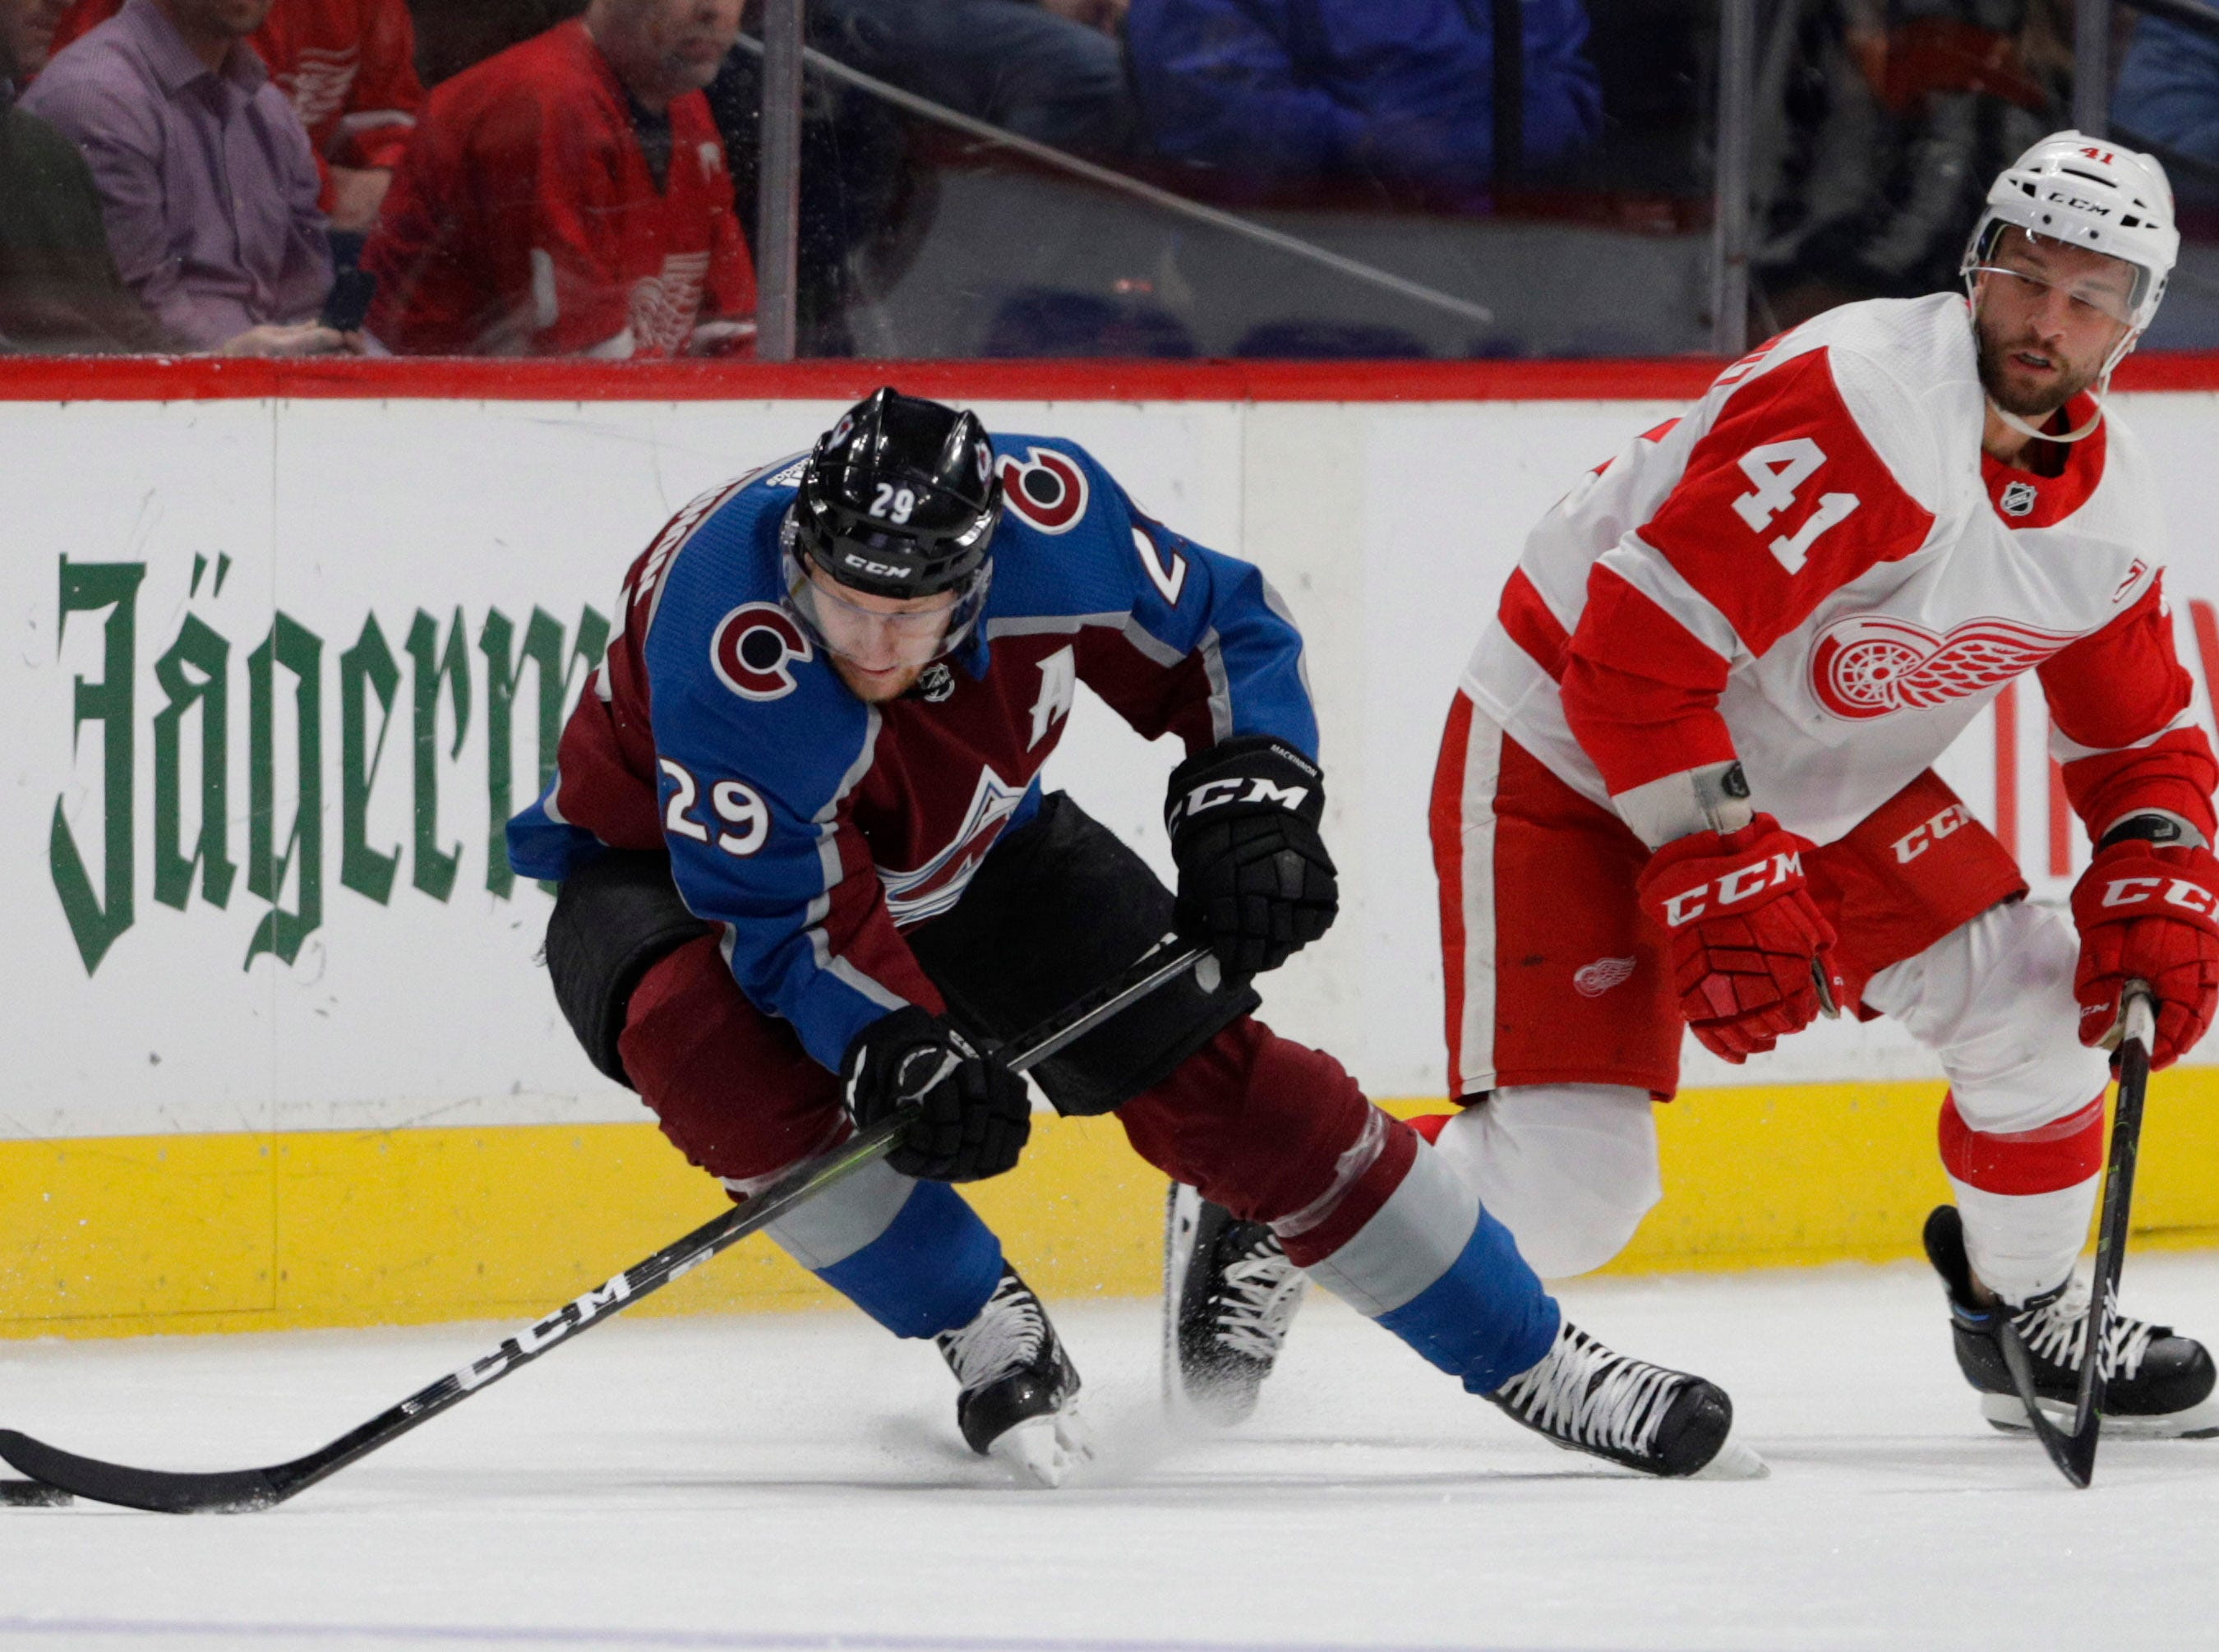 Colorado Avalanche center Nathan MacKinnon (29) skates away from Detroit Red Wings center Luke Glendening (41) during the second period of an NHL hockey game in Denver, Tuesday, March 5, 2019. Colorado won 4-3 in overtime. (AP Photo/Joe Mahoney)